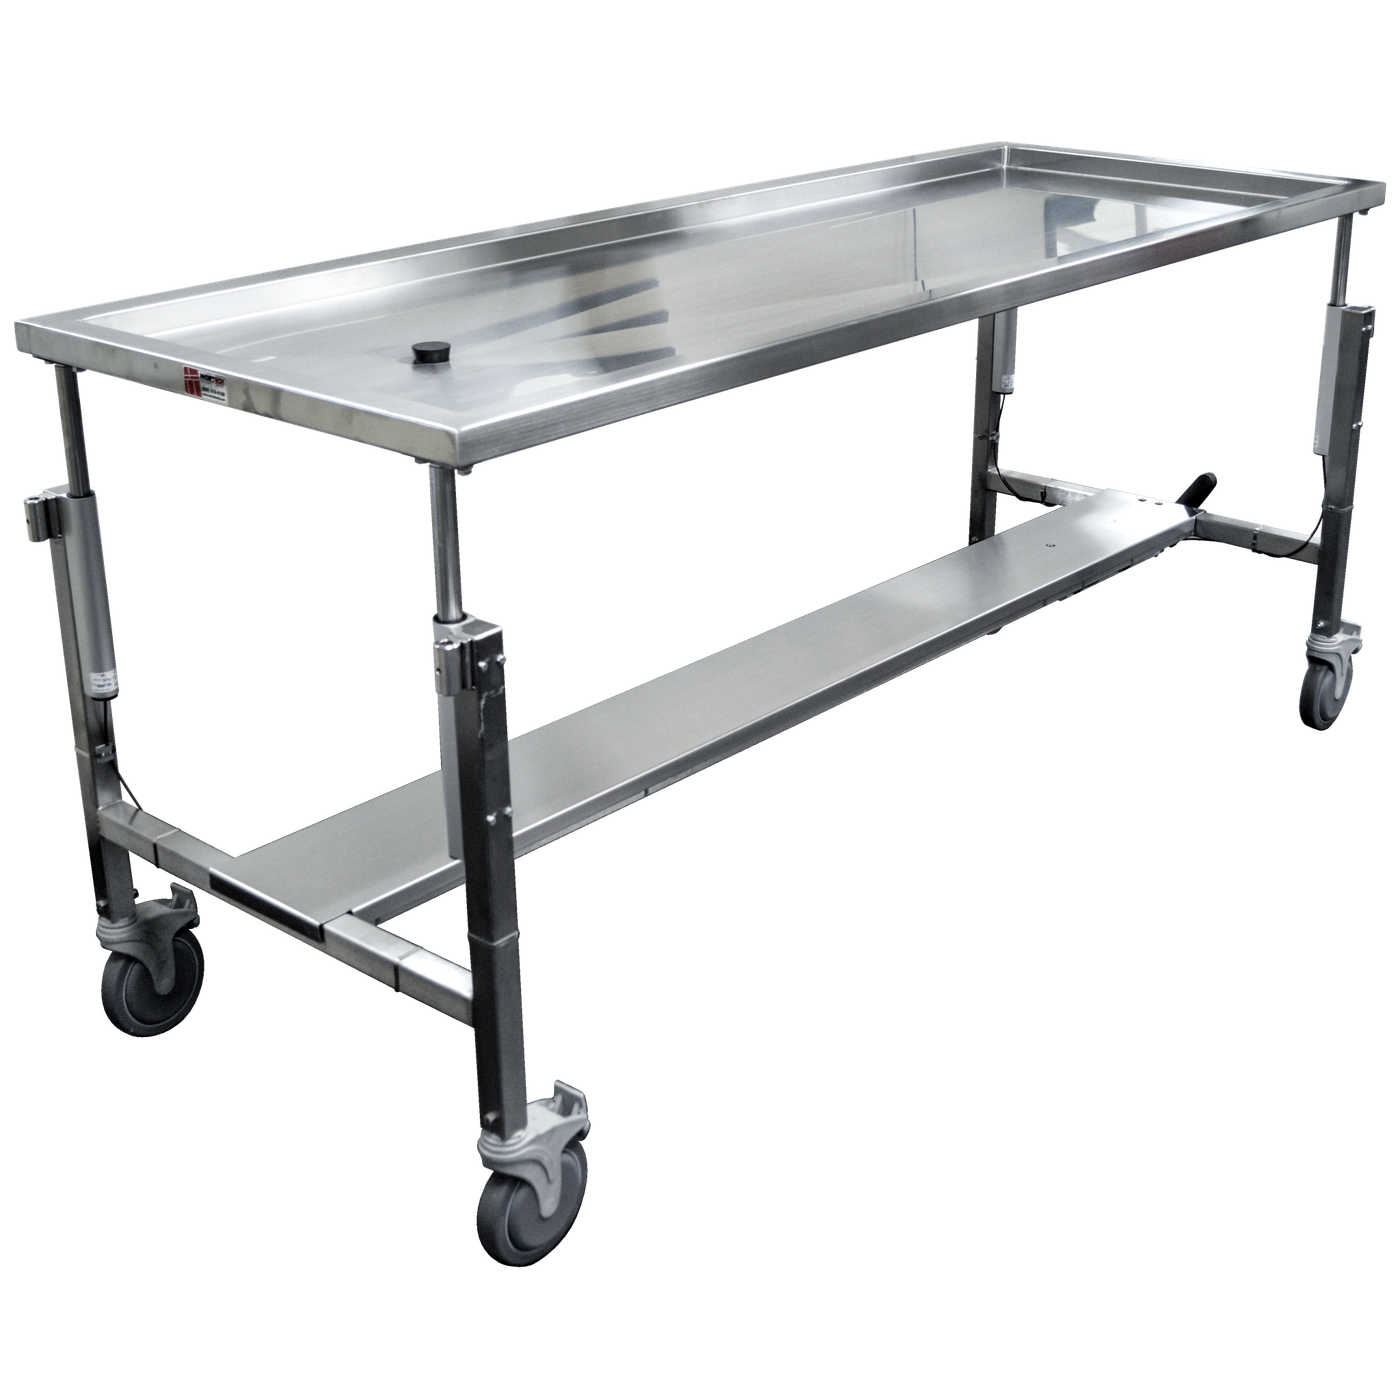 ADA Compliant Dissection Table with Hydraulic Height Adjustment-Anatomy Dissection Tables-Mortech Manufacturing Company Inc. Quality Stainless Steel Autopsy, Morgue, Funeral Home, Necropsy, Veterinary / Anatomy, Dissection Equipment and Accessories